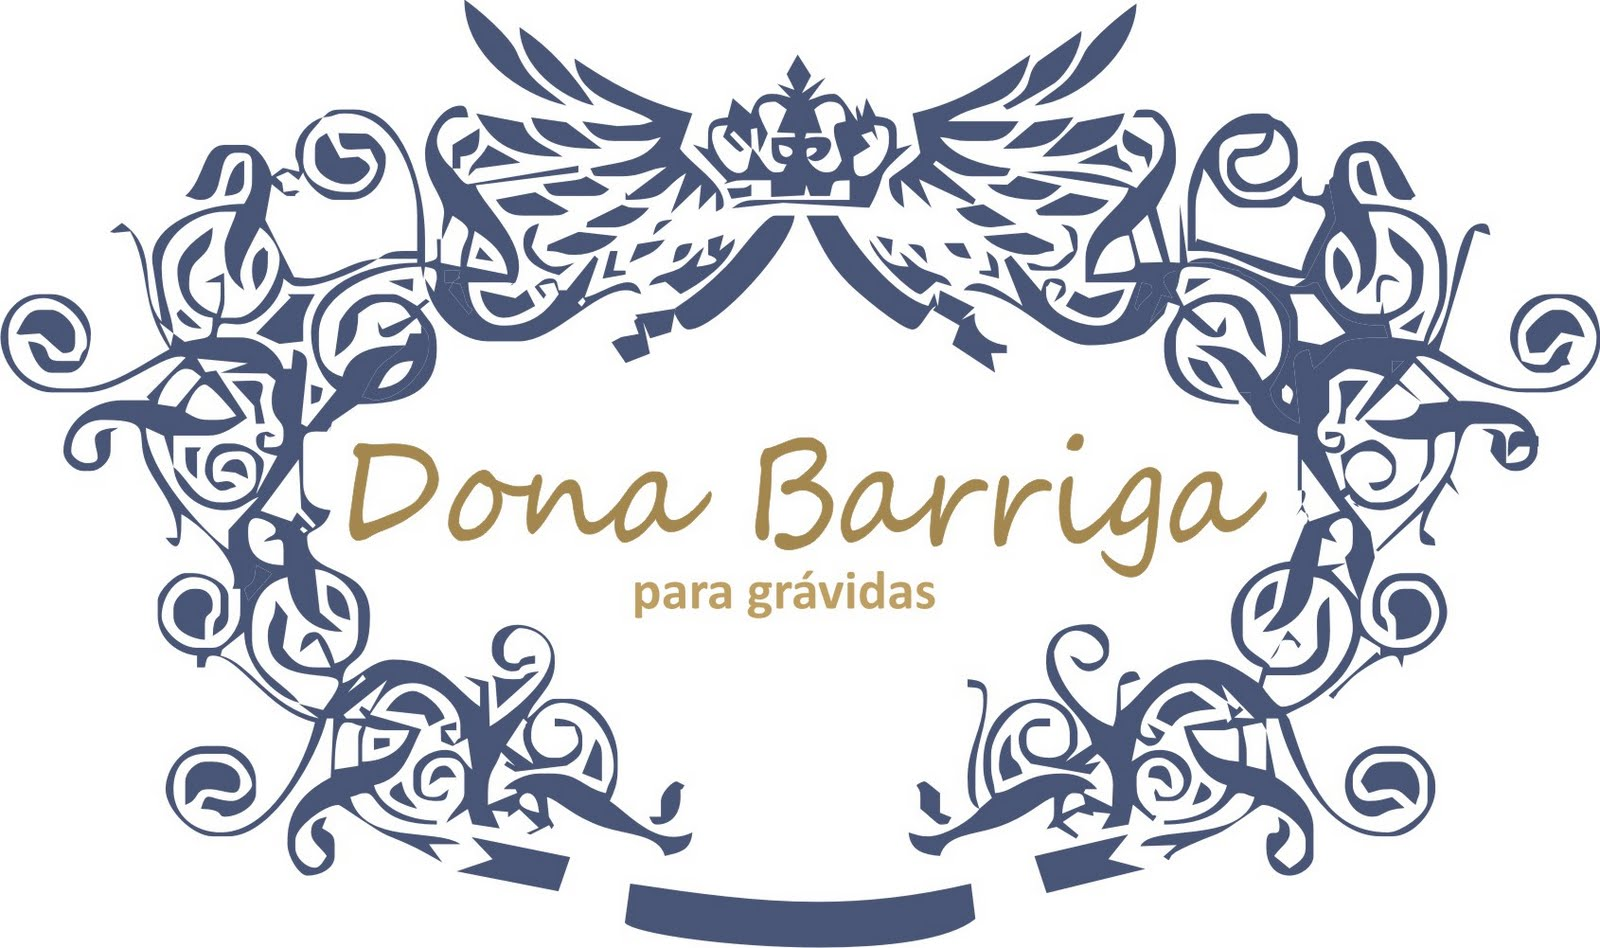 DONA BARRIGA - Foz do Iguaçu